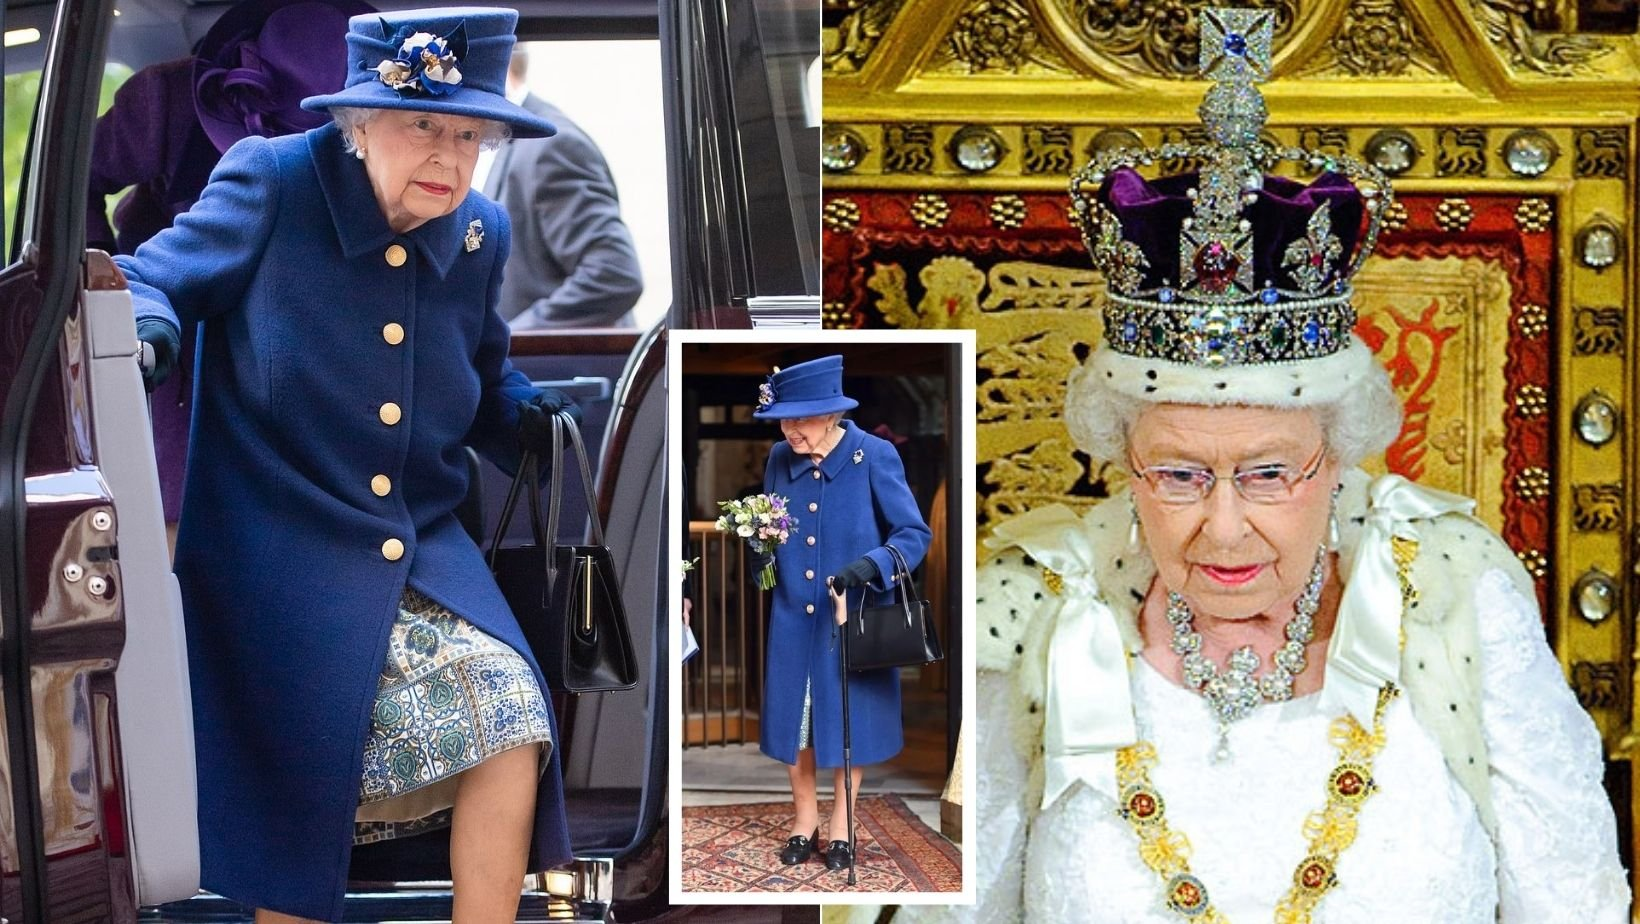 1 42.jpg?resize=1200,630 - The Queen Was Seen Using A Walking Stick For The FIRST TIME In 20 Years During A Public Event